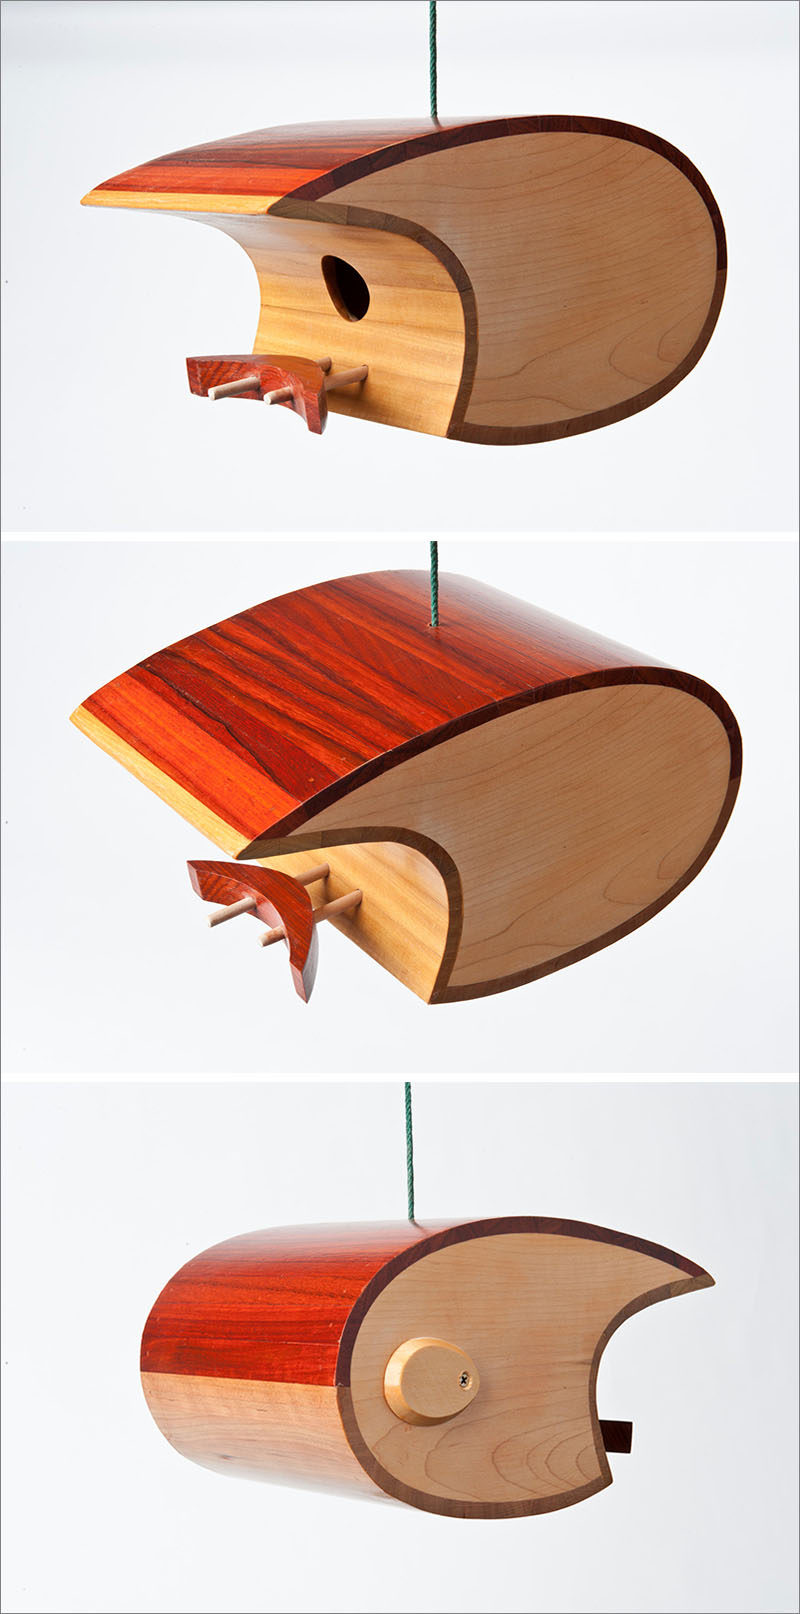 Discarded wood from tropical hardwood floor manufacturers is used to create this curved, modern birdhouse.